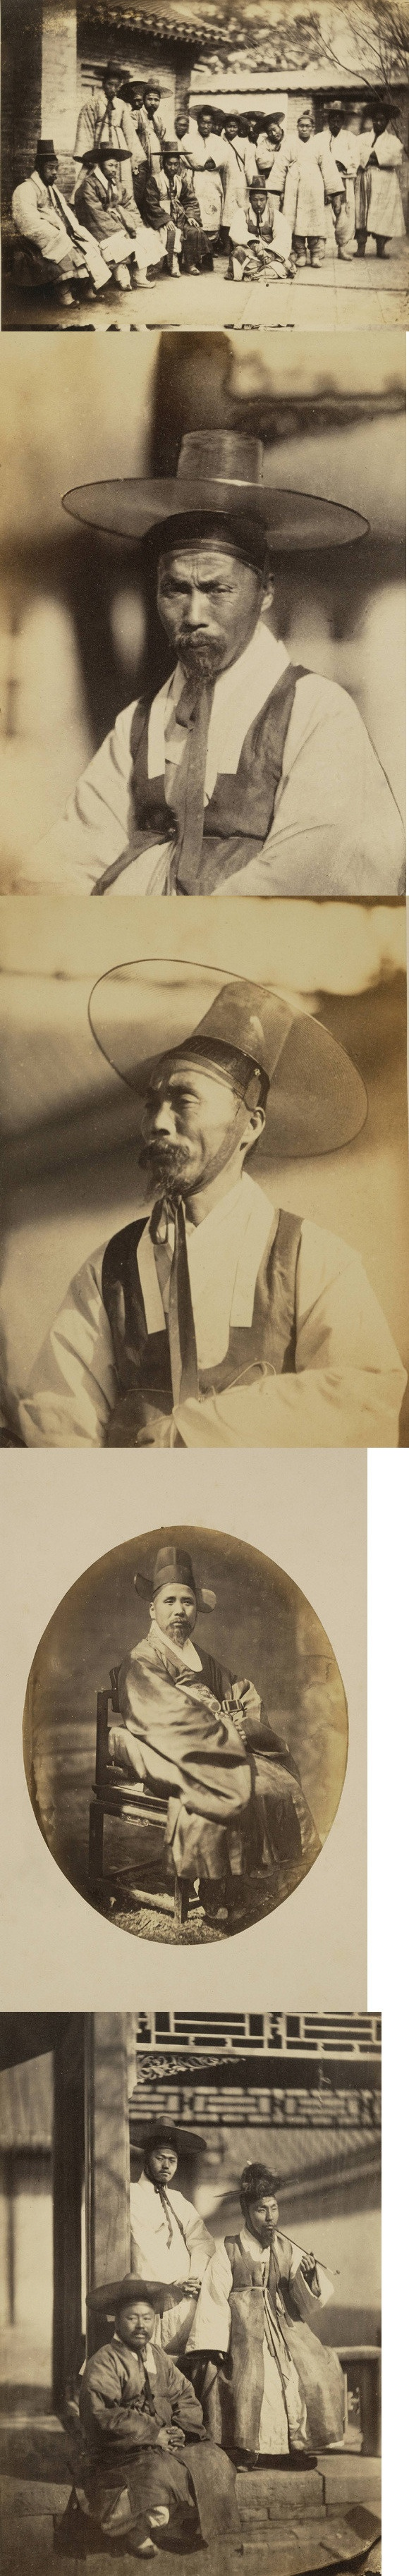 Korea [unlabeled by uploader: probably early Colonial Period]